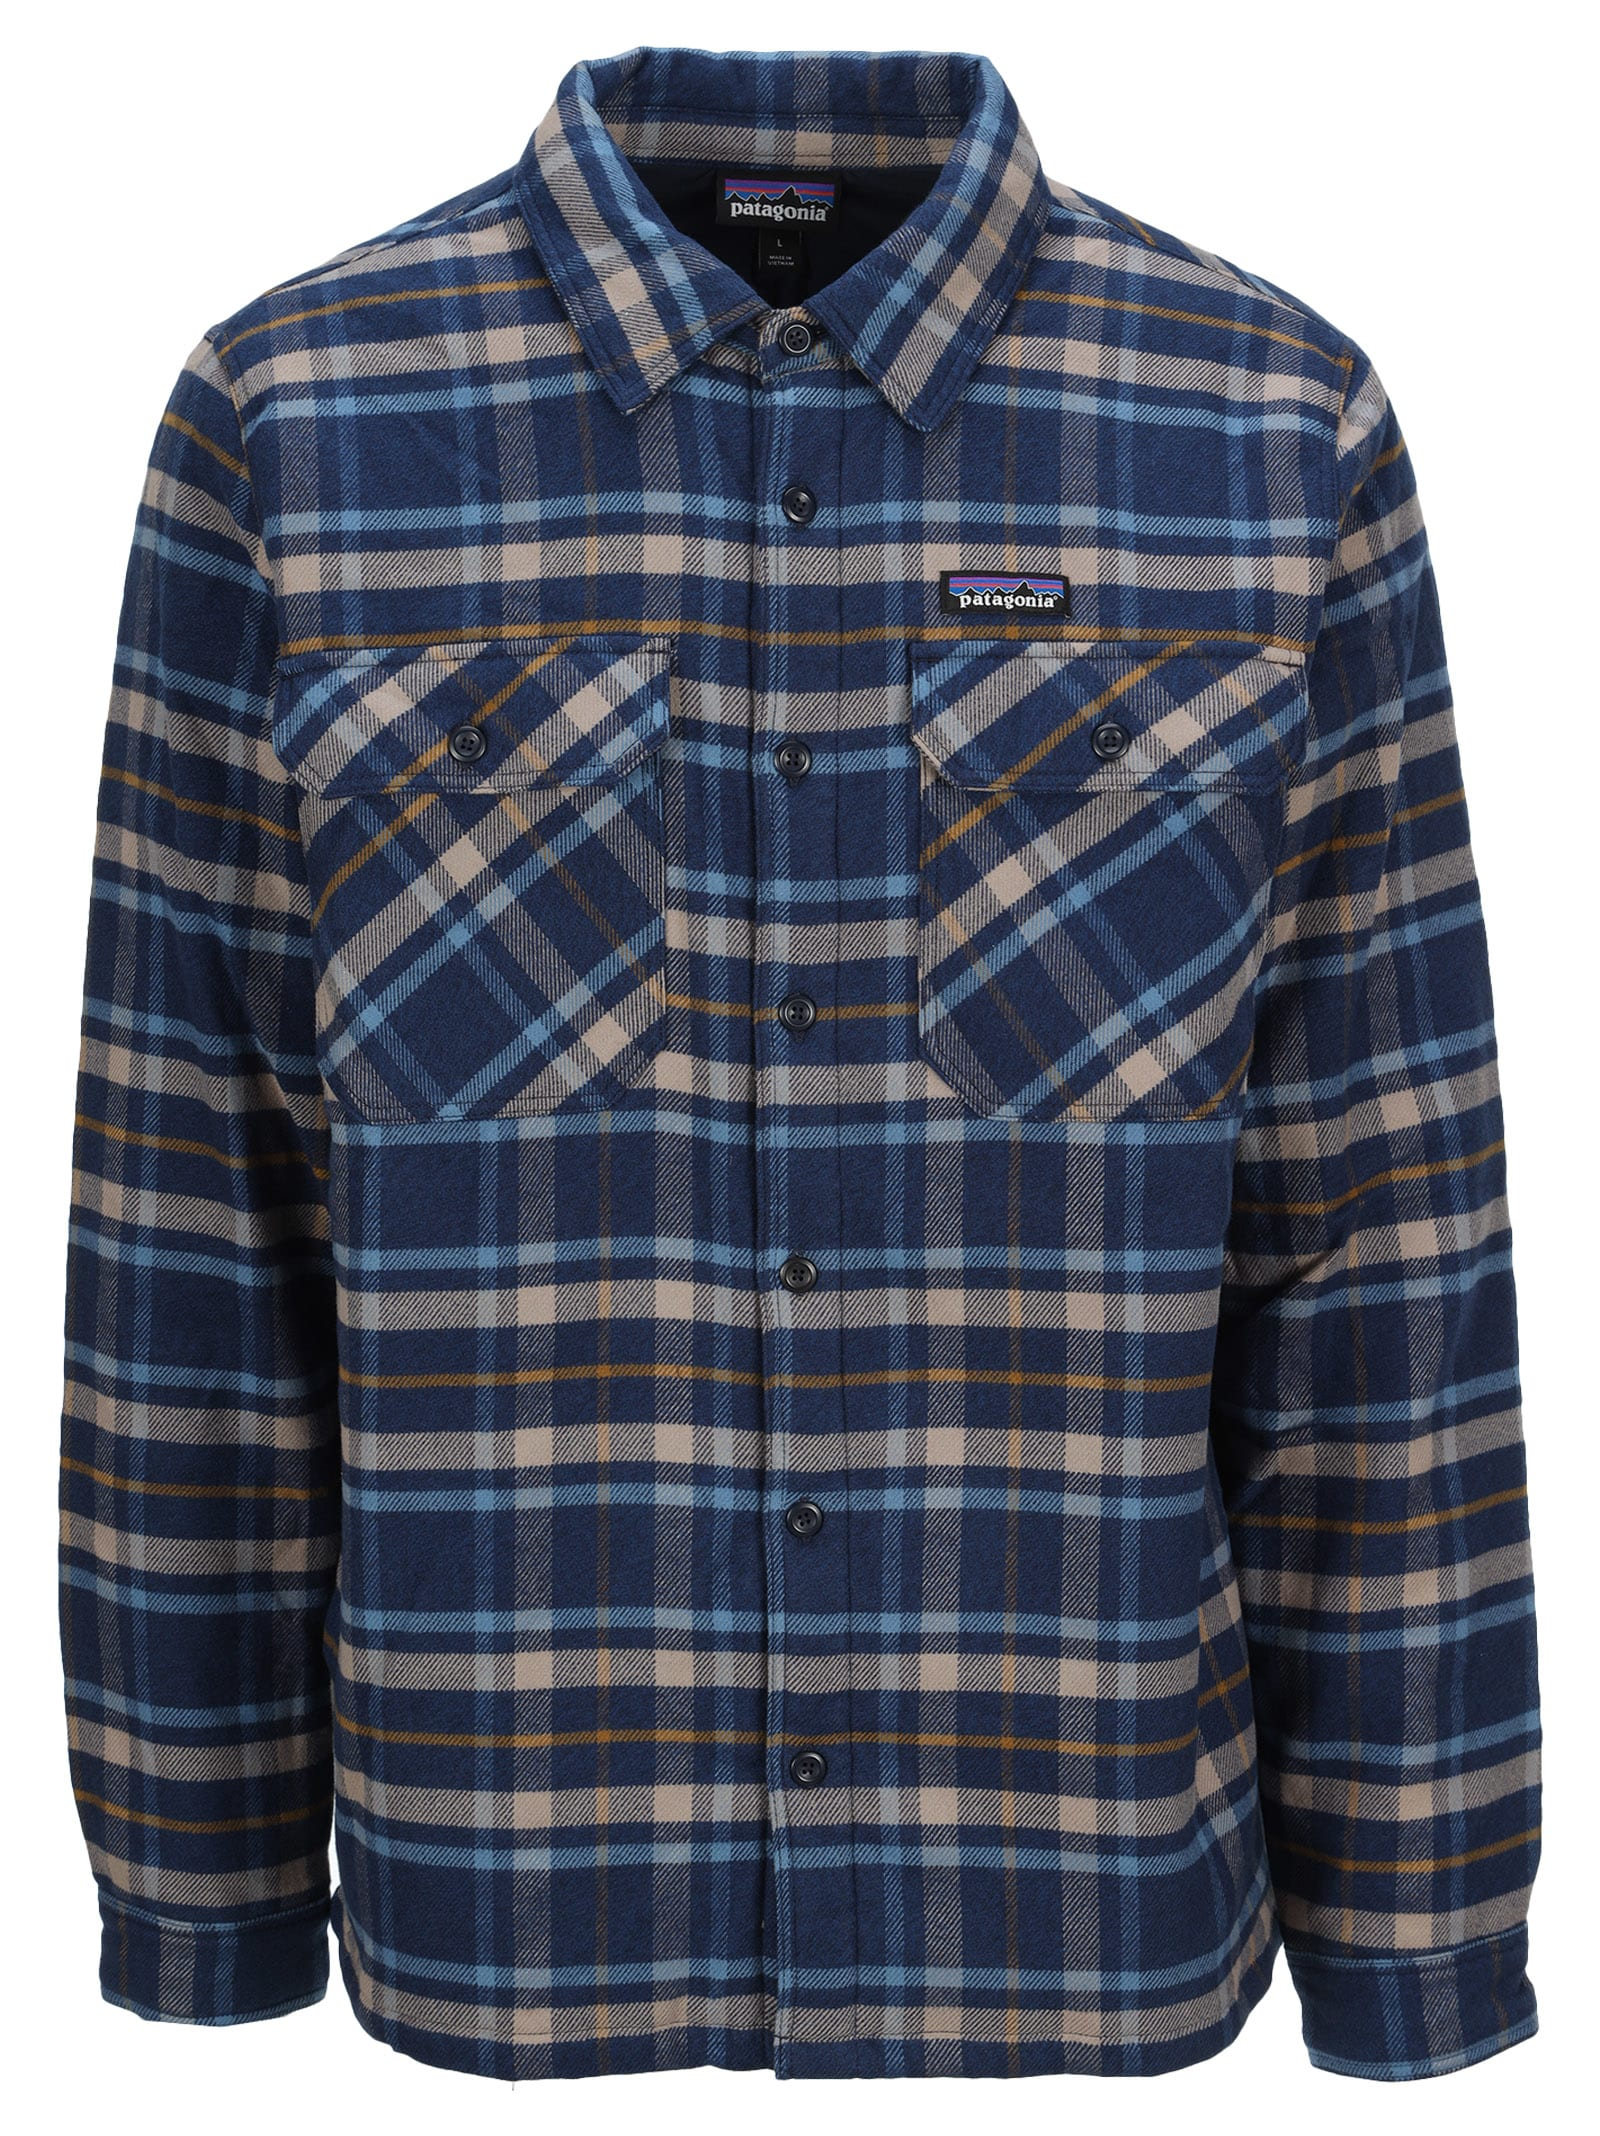 Cotton Check Shirt Jacket By Patagonia. Featuring: - Classic Collar; - Front Buttons Fastening; - Logo Patch At The Chest; - Chest Buttoned Flap Pockets; - Long Sleeves; - Button Cuffs; - Straight Hem. Composition: 100% ORGANIC COTTON - LINING:, 100% POLYESTER